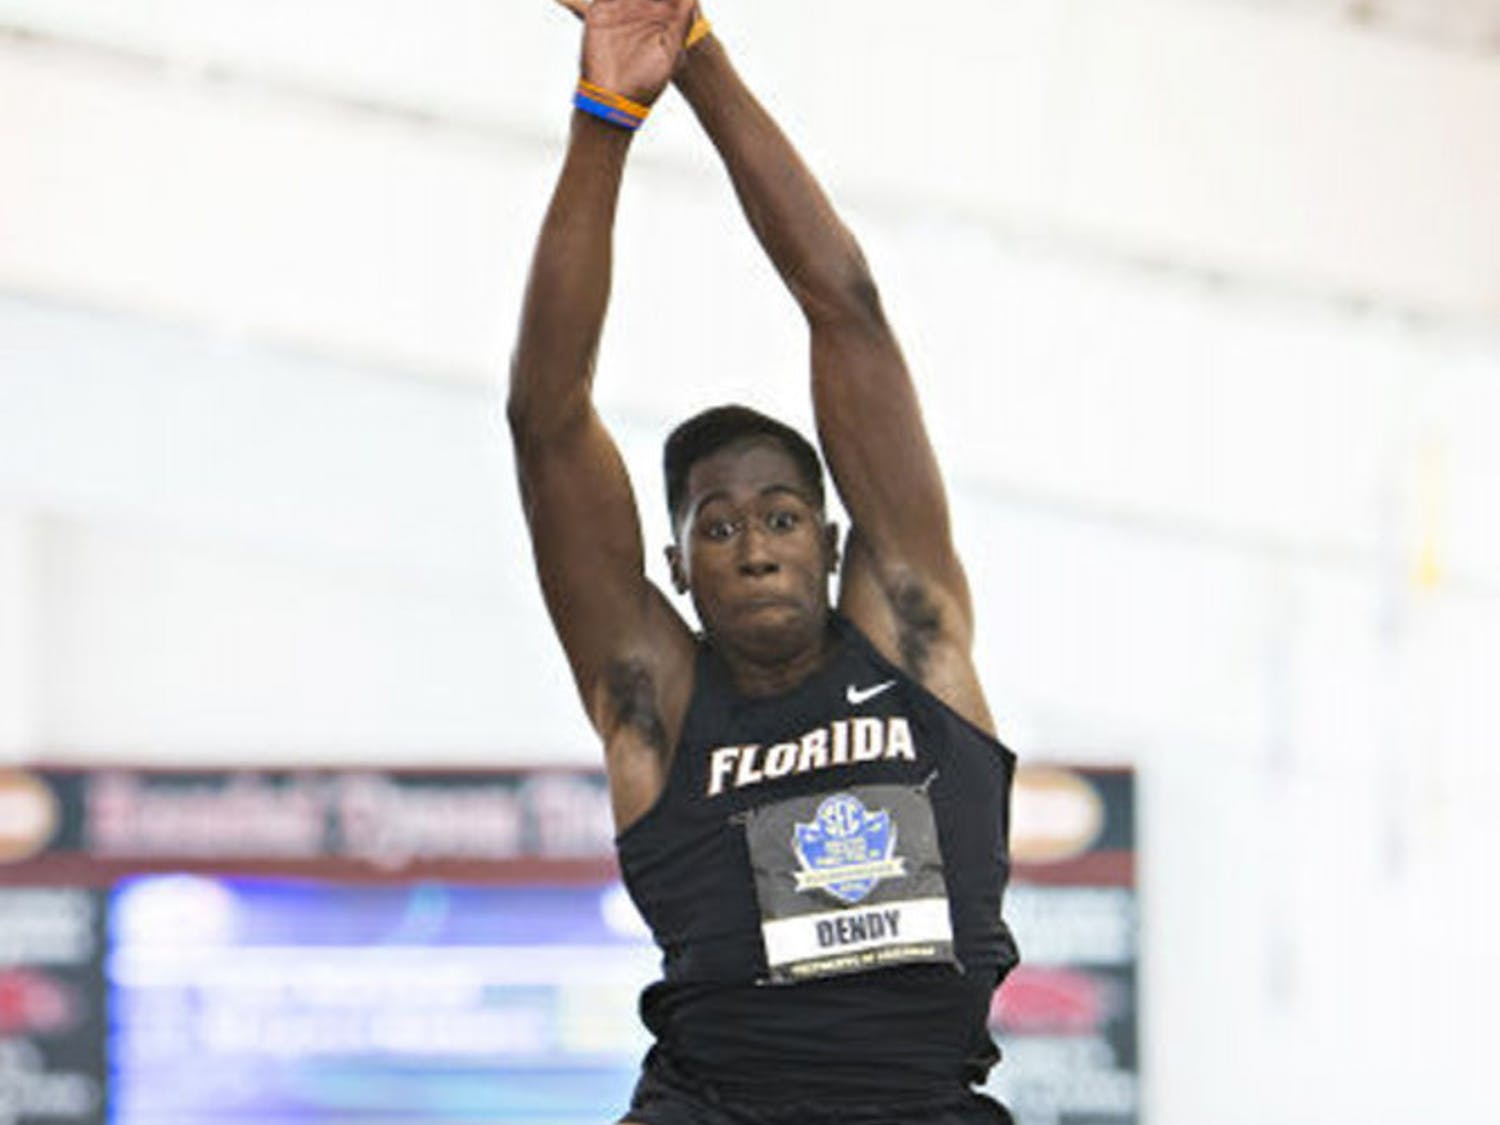 Marquis Dendy competes at the Southeastern Conference Indoor Track Championships on Feb. 23, 2013, in Fayetteville, Ark. Dendy won the long jump on Day 2 of the NCAA Outdoors Championships on Thursday in Eugene, Ore.